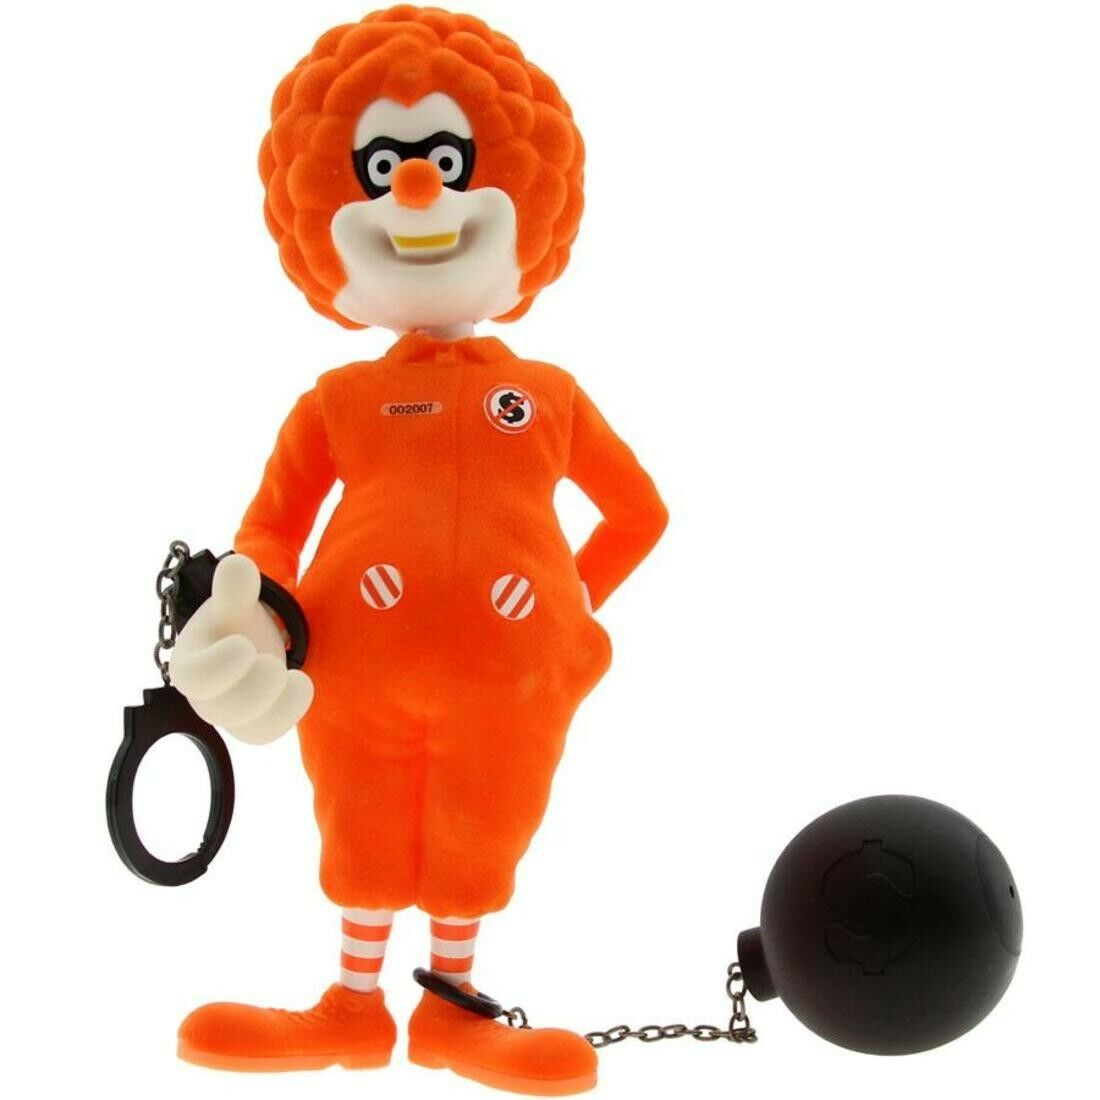 McDonkey II Figurine - ROTemption (Orange)